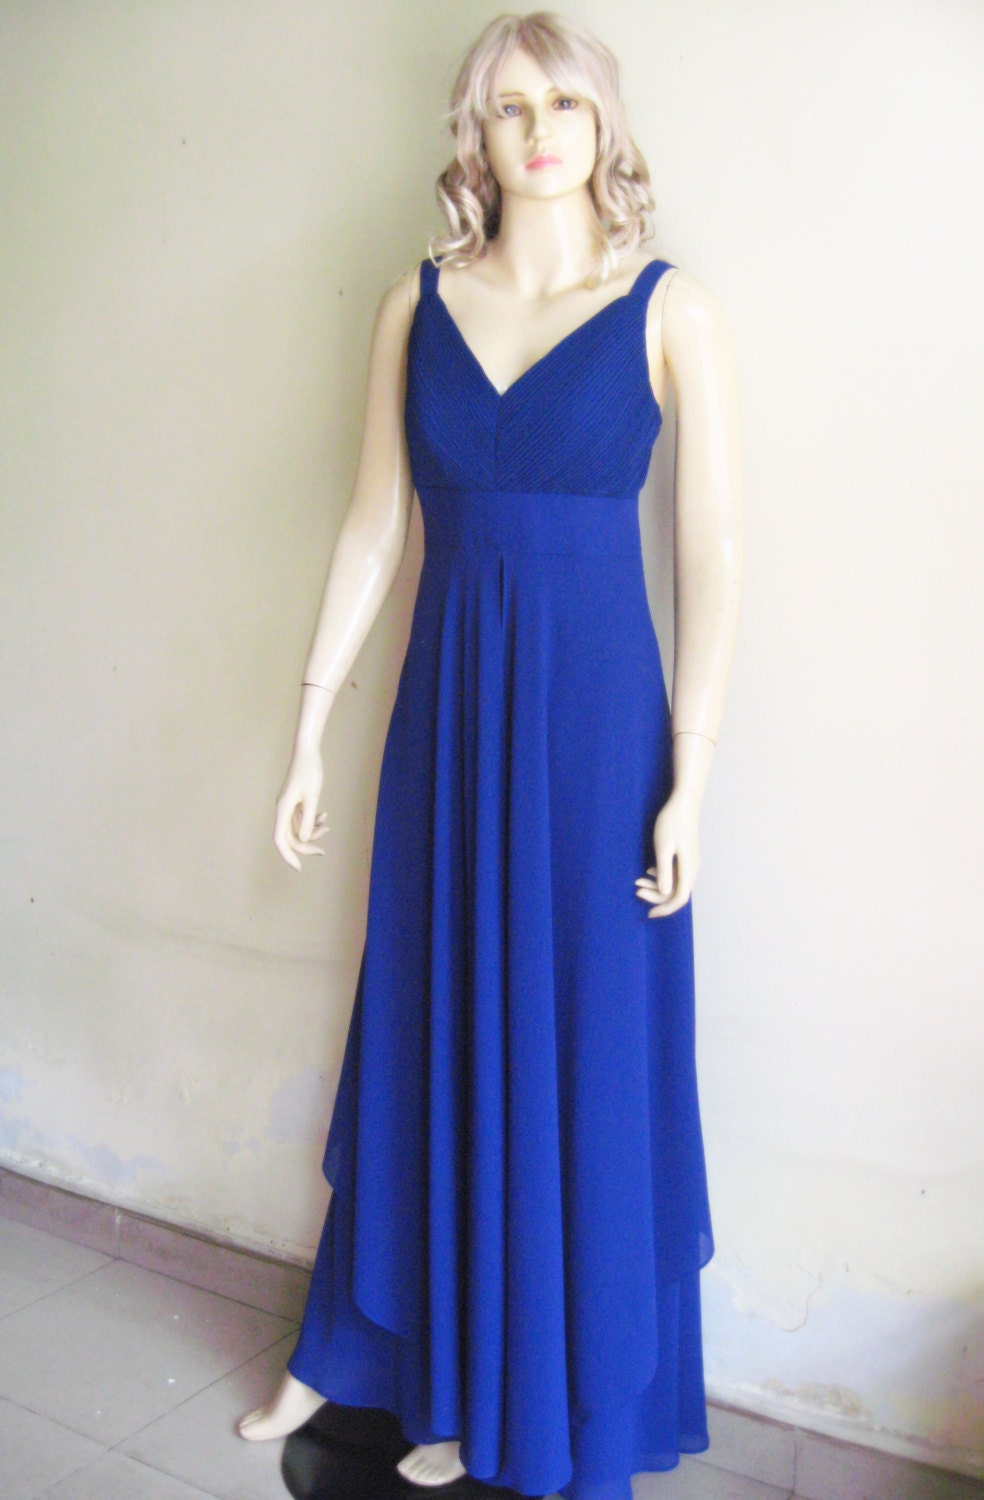 Blue Prom Dress.Long Bridesmaid Dress by lynamobley2012 on ...